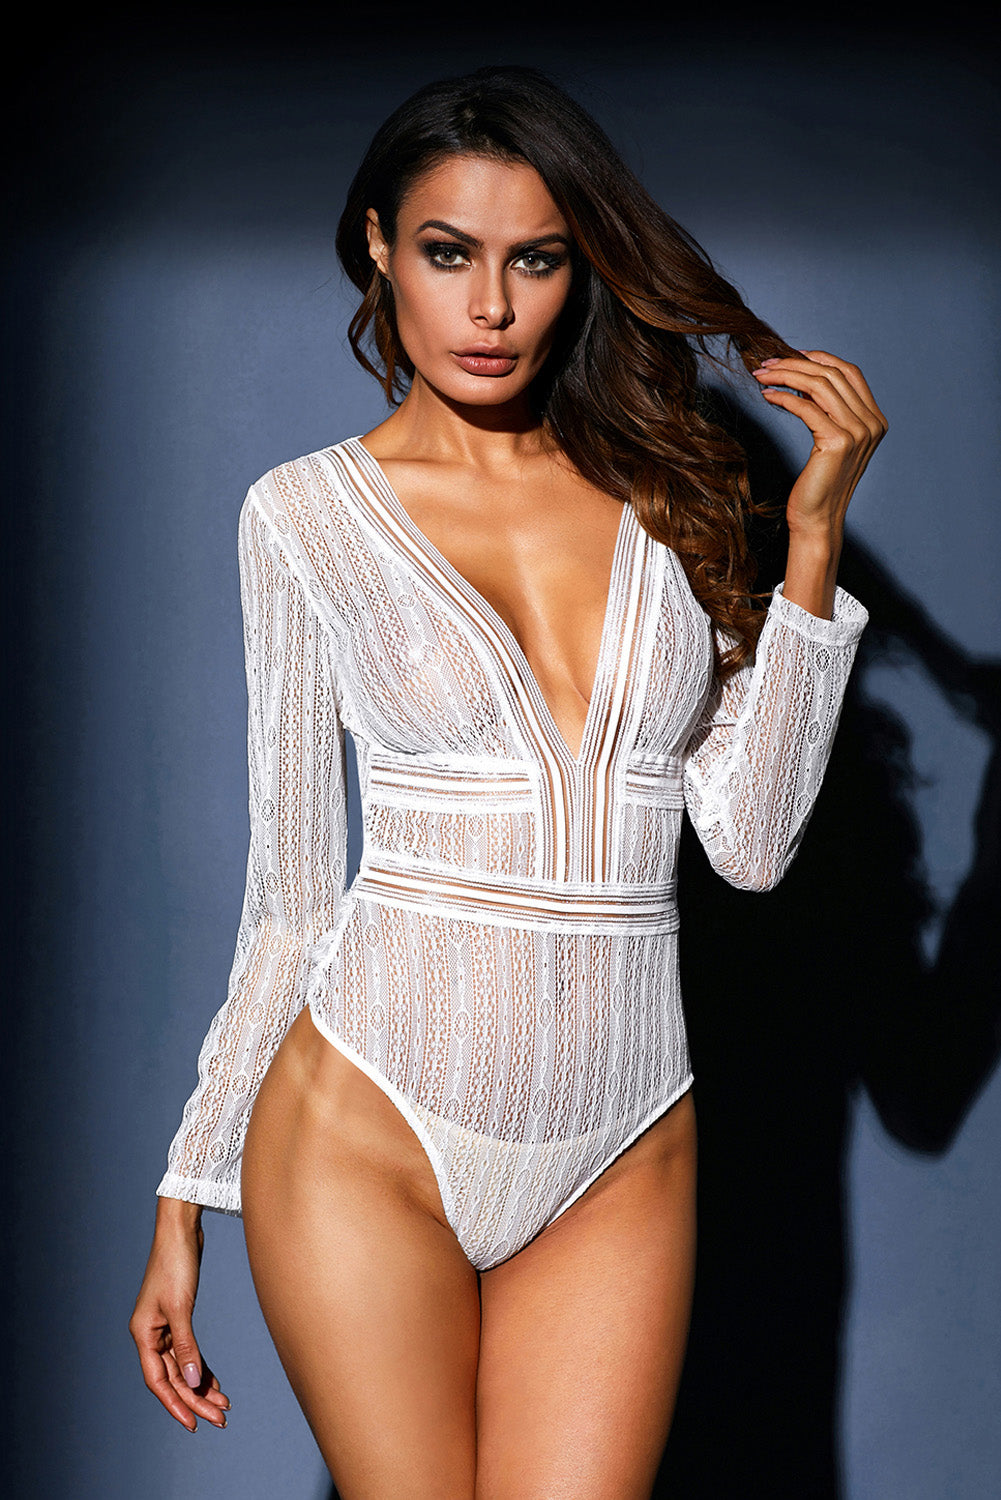 White Deep V Neck Long Sleeve Bodysuit With Open Back Lingerie LAVELIQ - Laveliqus